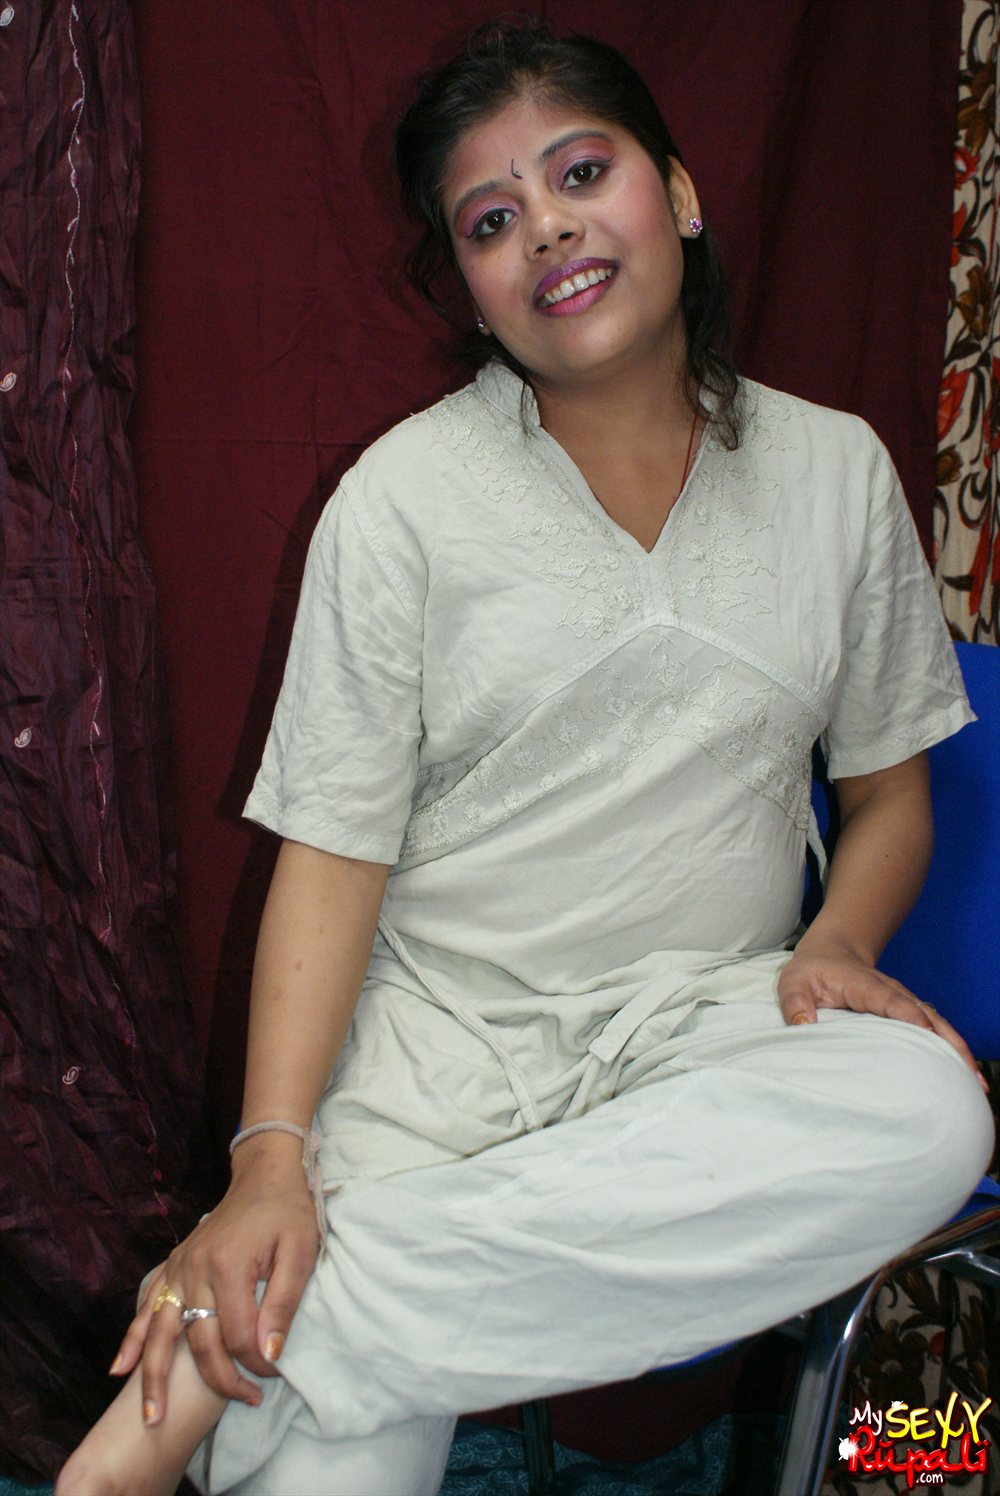 Pic gal  25. Rupali in her night suit